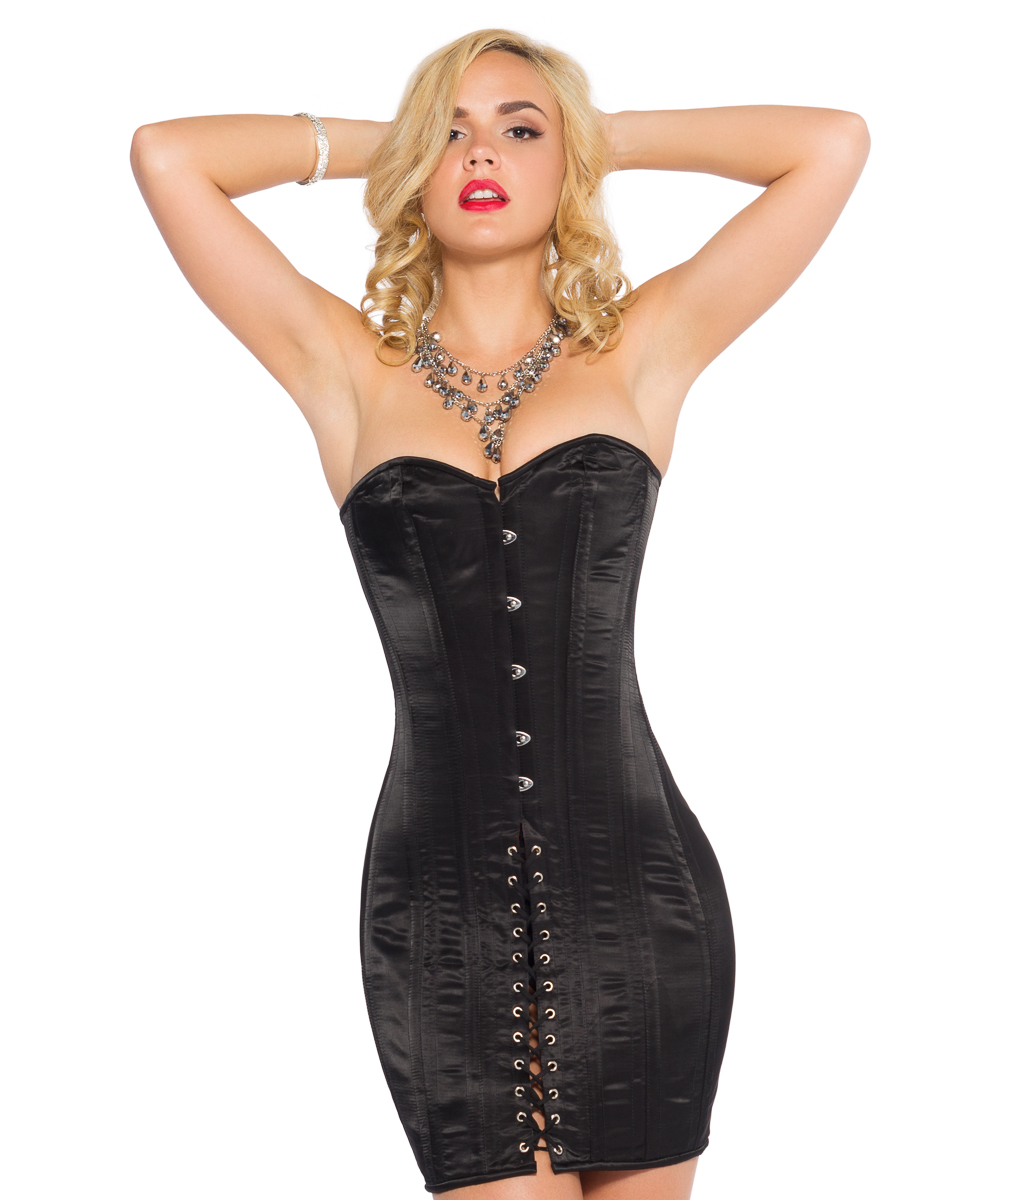 56e00e17a0 Black Satin Corset Dress